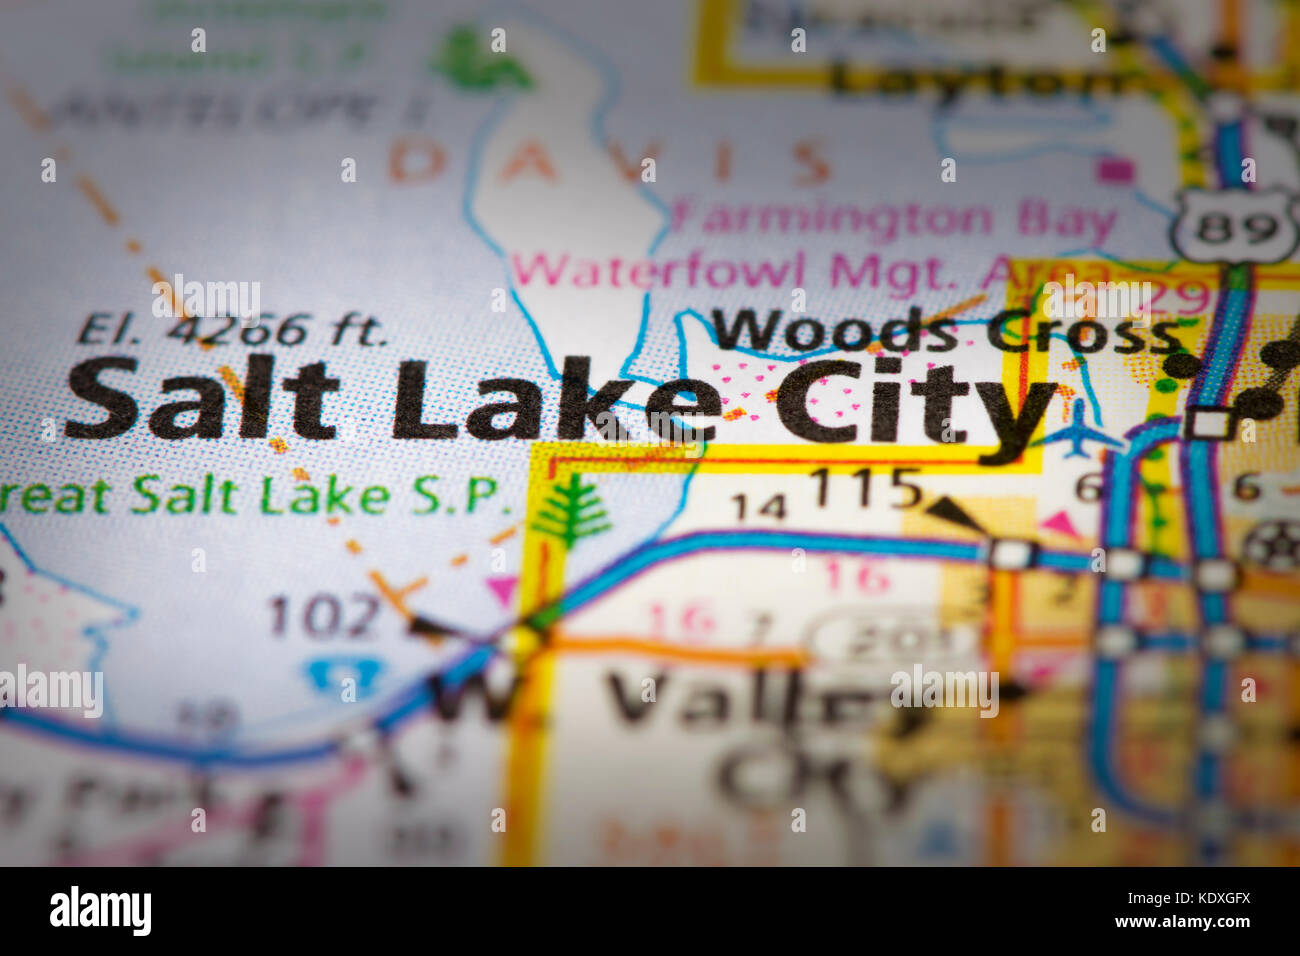 Closeup of Salt Lake City, Utah on a road map of the United ... on salt lake city va map, snowbird utah map, sioux city iowa on usa map, salt lake city on a state map, salt lake city streetcar map, salt lake city utah area map, salt lake city with map of america, southern utah tourism map, salt lake city zip code map, sandy utah on usa map, utah airports map, snowbird mountains north carolina map, salt lake city on us map, great salt lake map, lake city street map, salt lake city parking map, utah road map, kansas city missouri on usa map, ogden utah on usa map,